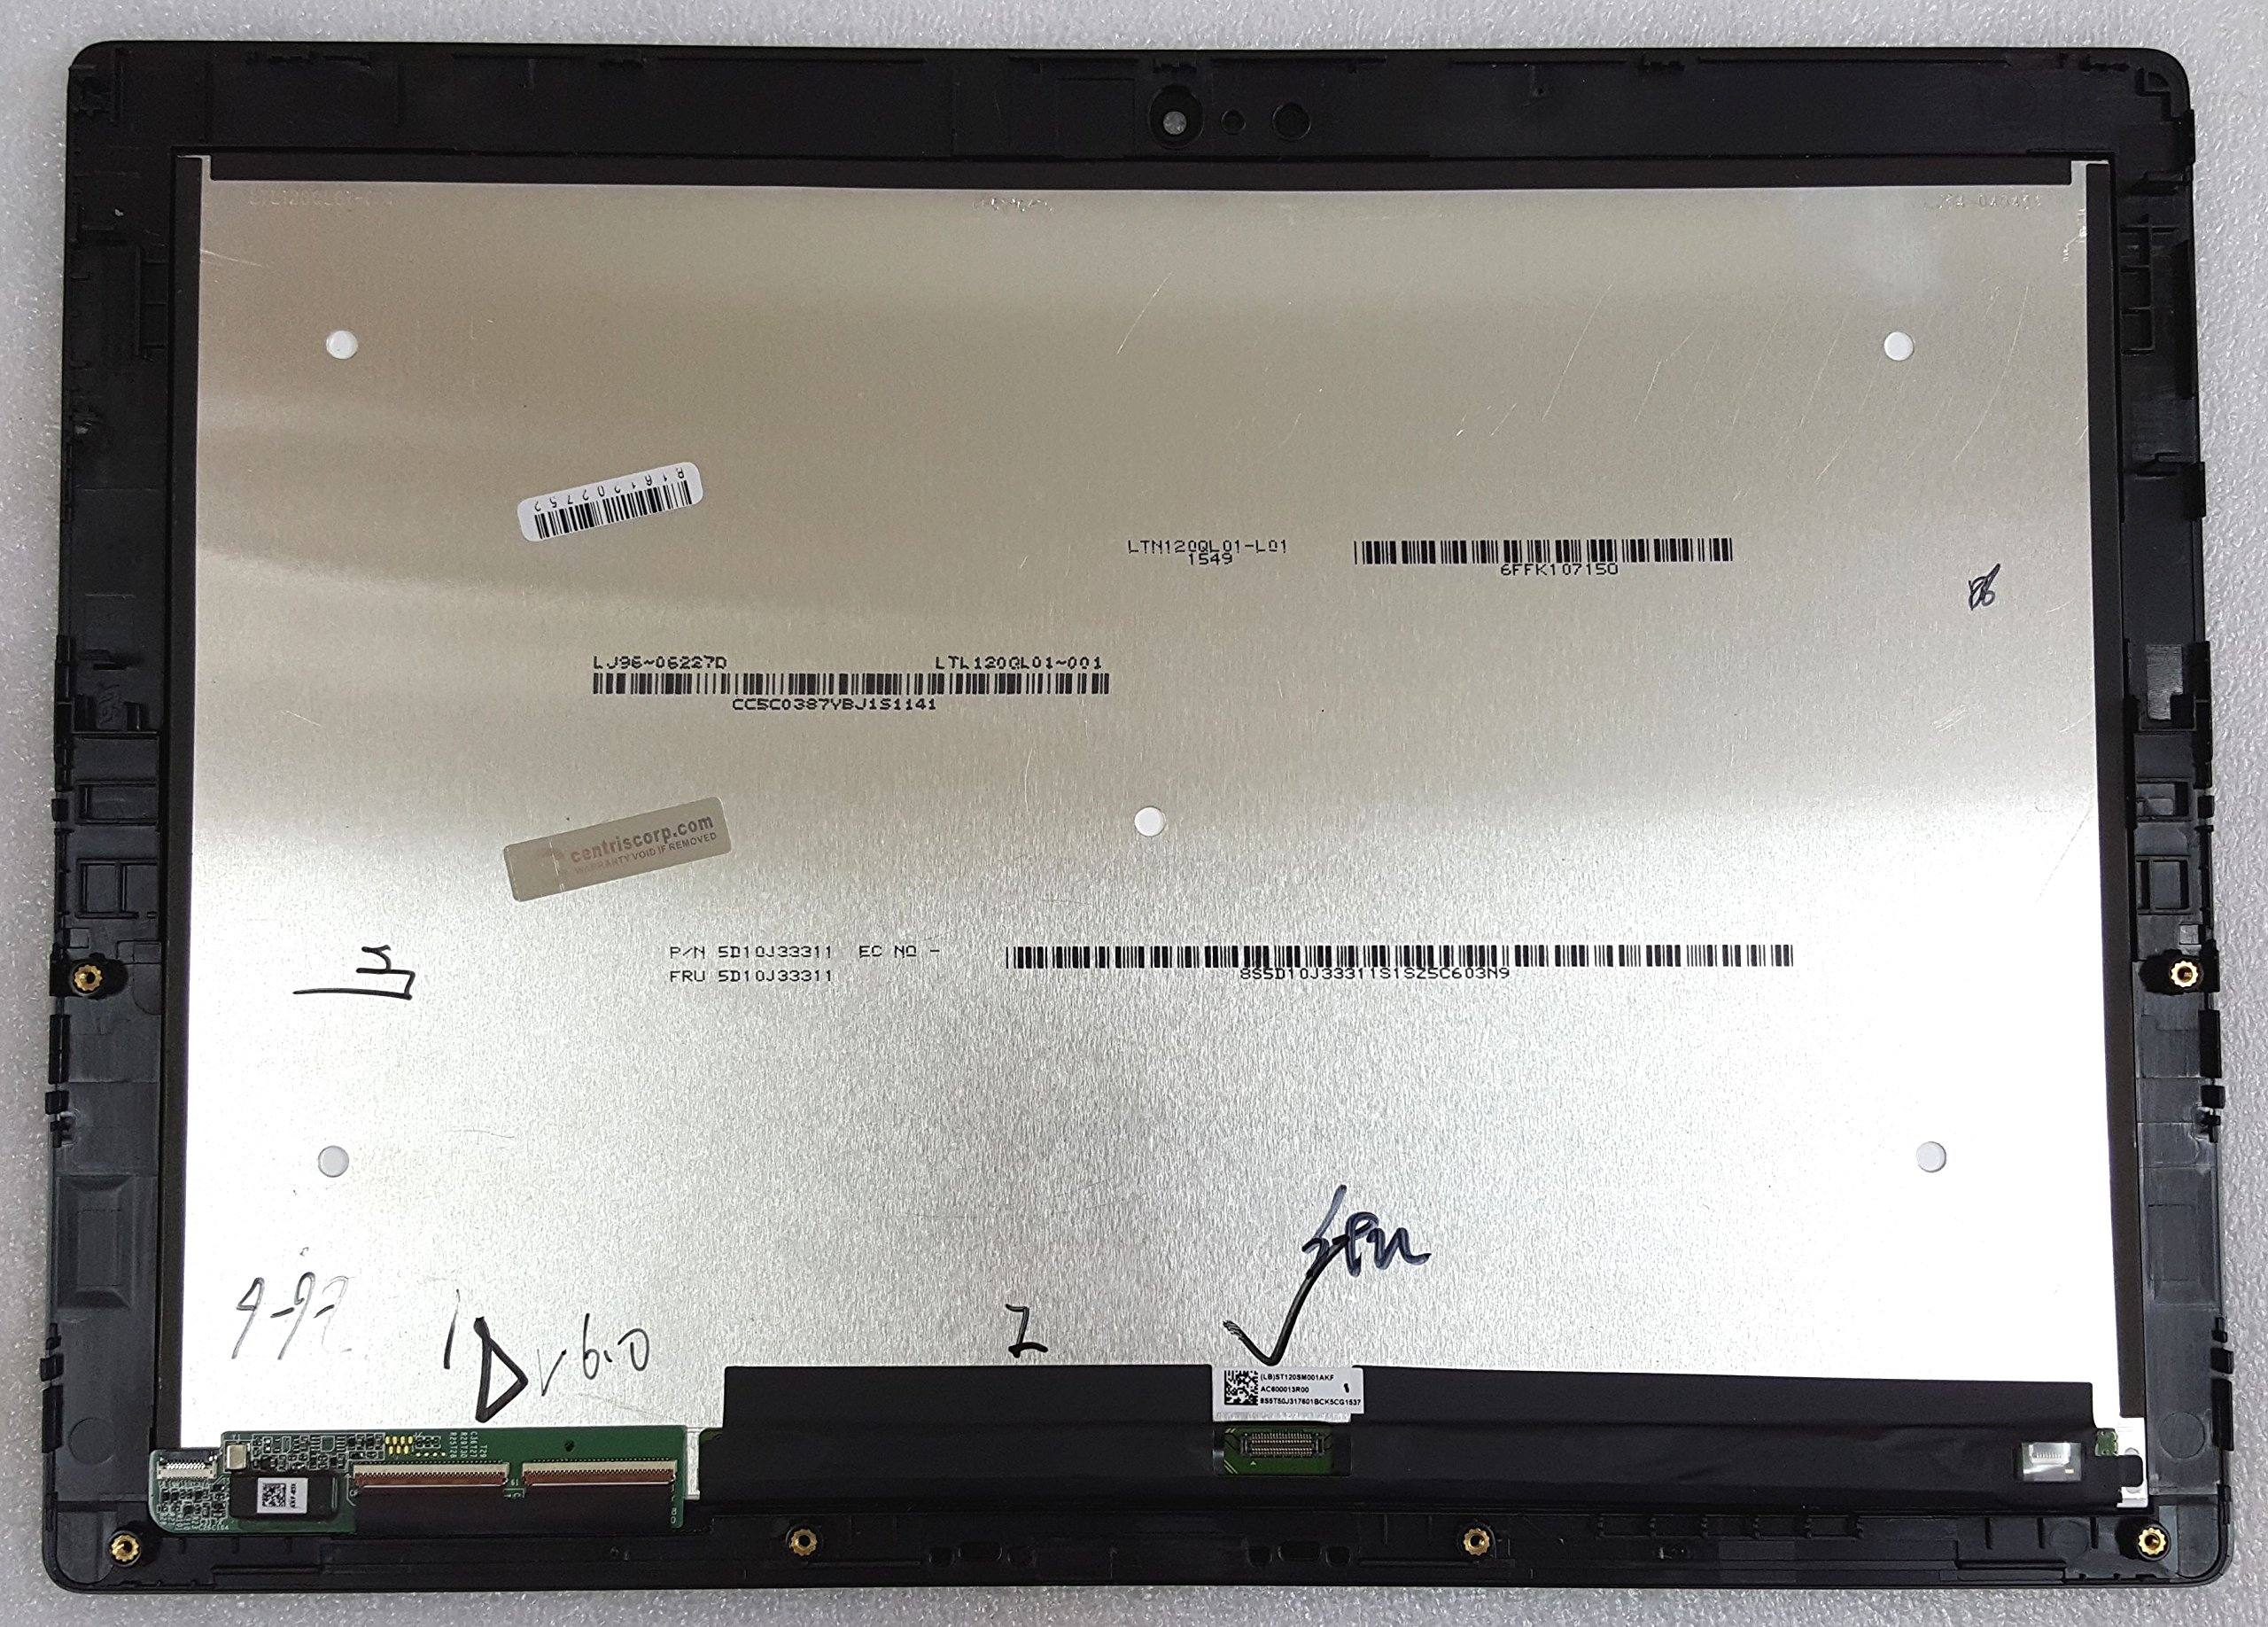 12'' Lenovo Miix 700 Touch Digitizer LCD (LTN120QL01-L01) Display Assembly with Bezel 5D10J33311